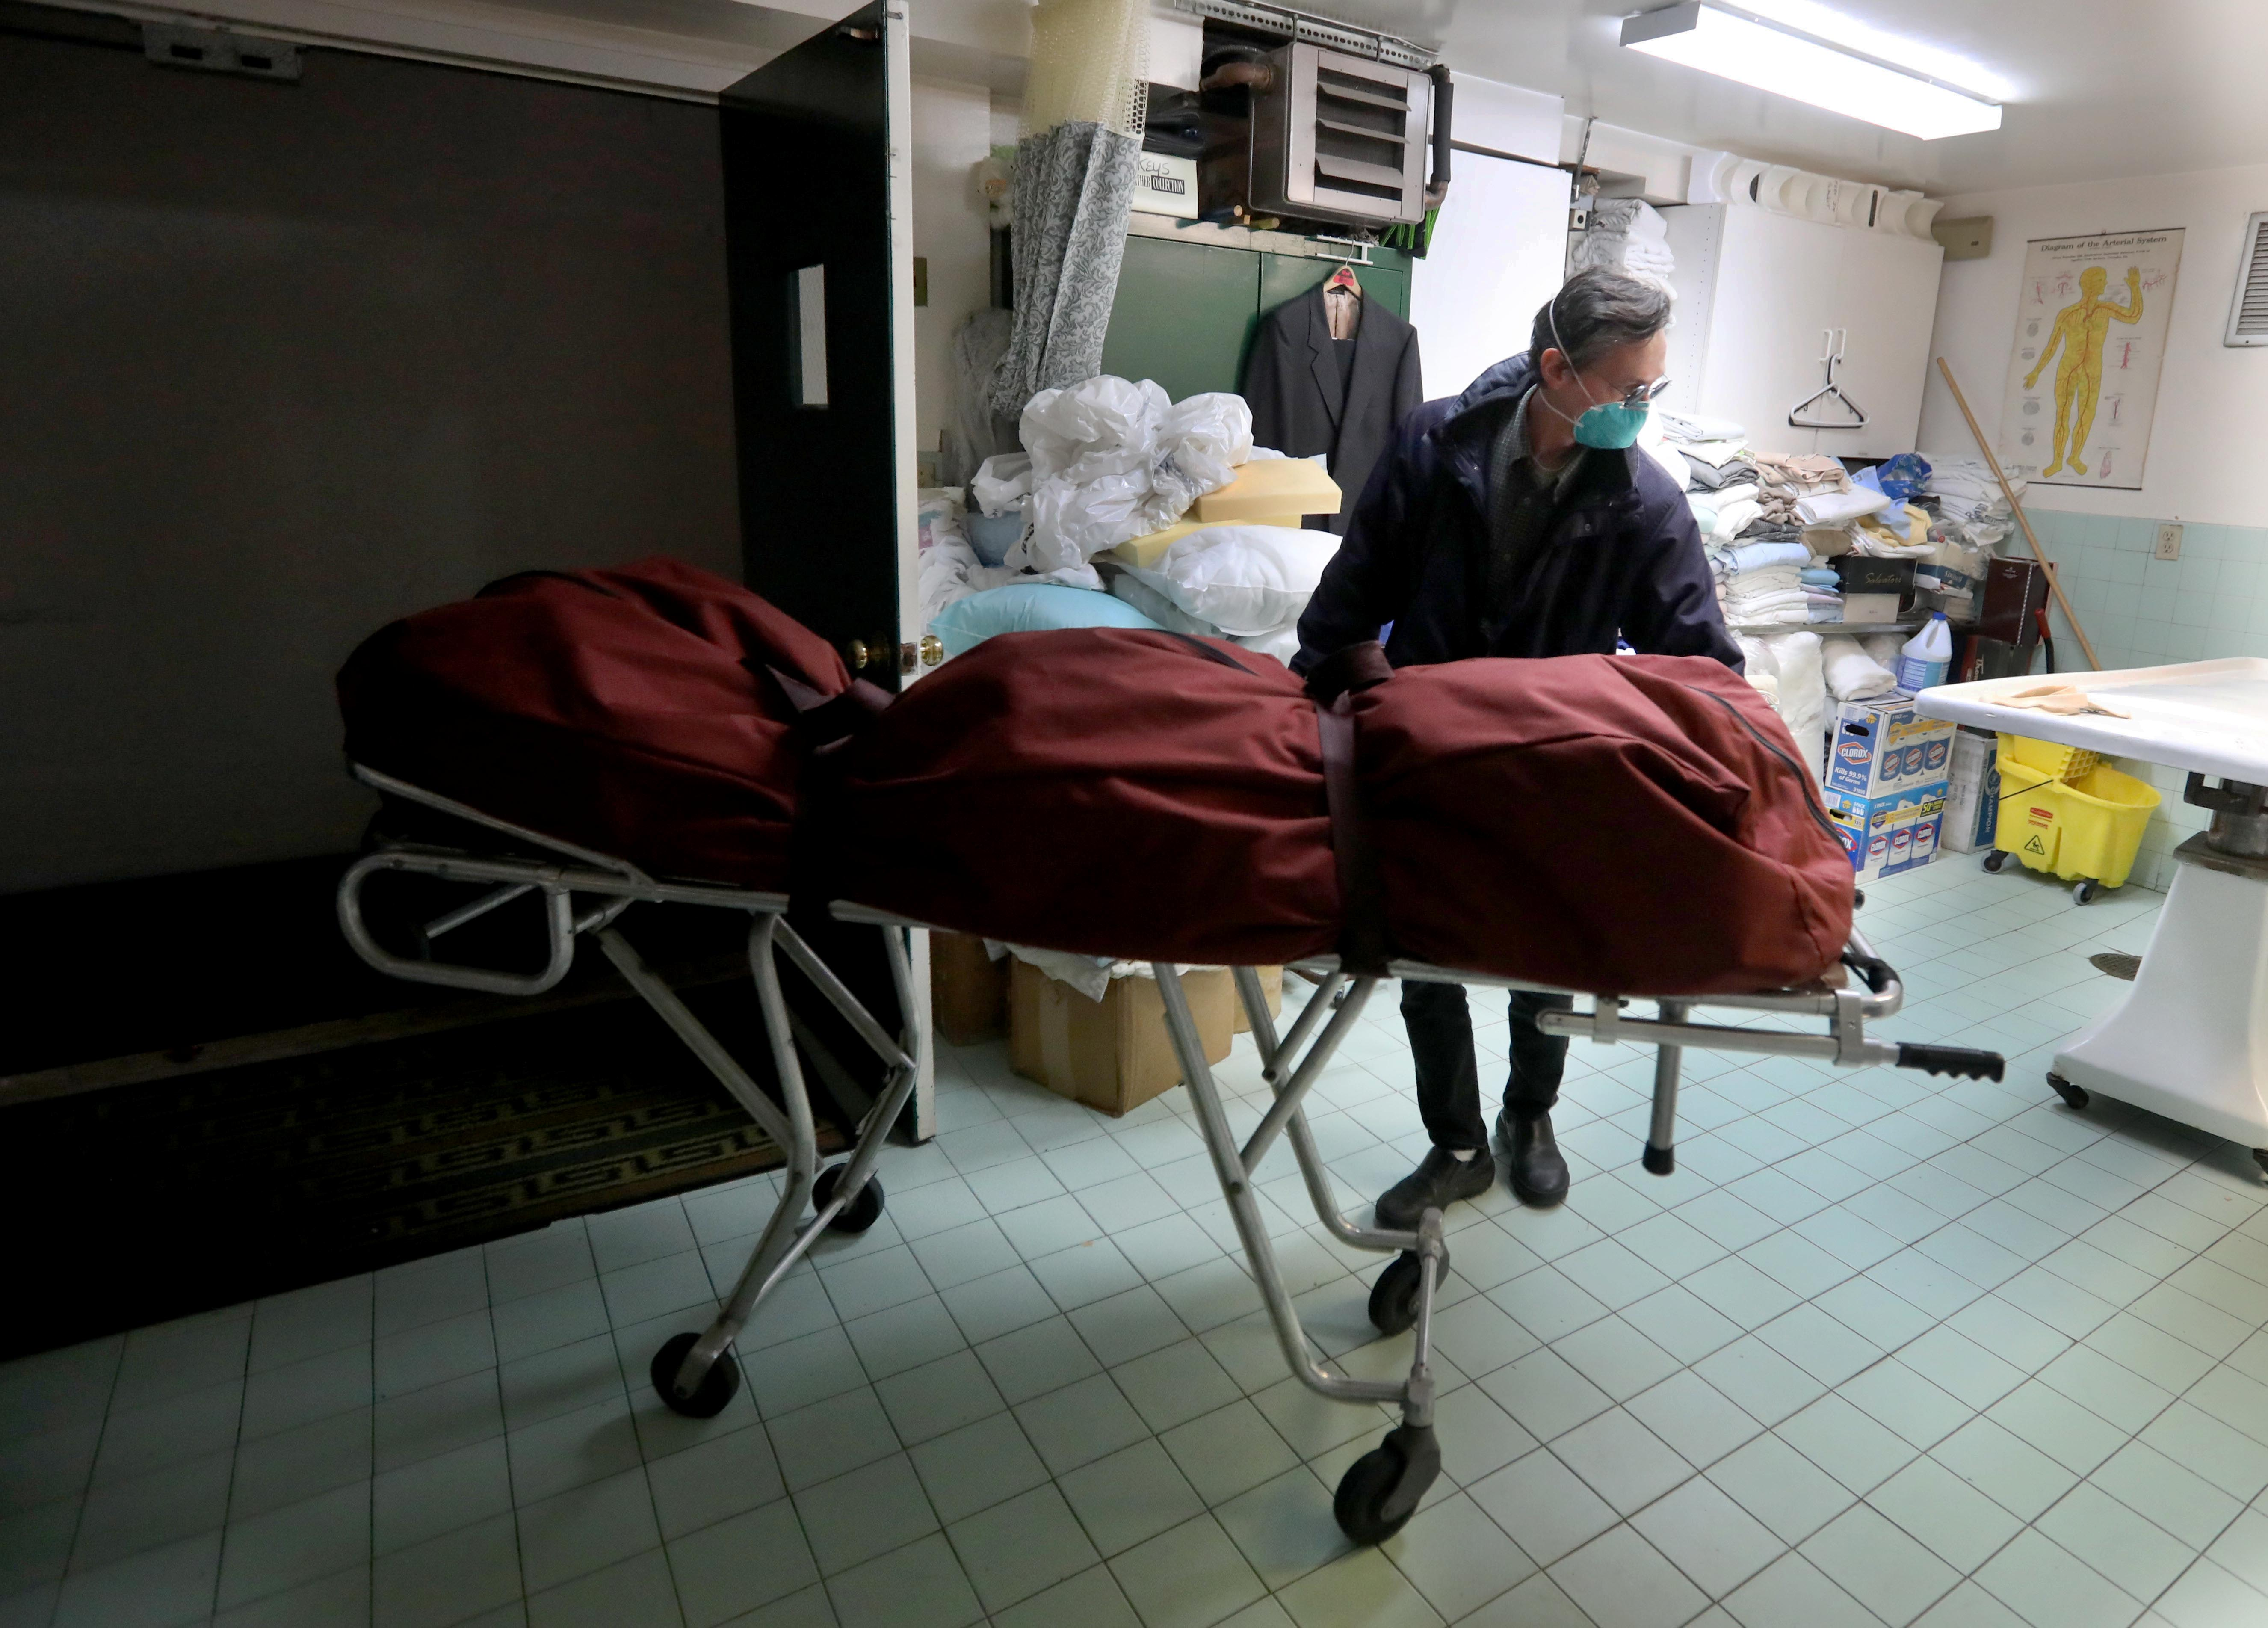 At the start of the COVID-19 pandemic, funeral directors went from handling four funerals a week to at least five burials or cremations daily. Here funeral director Mark Flower places a body that he just picked up from the New York City Medical Examiner's office in the prep room of his Yonkers funeral home.